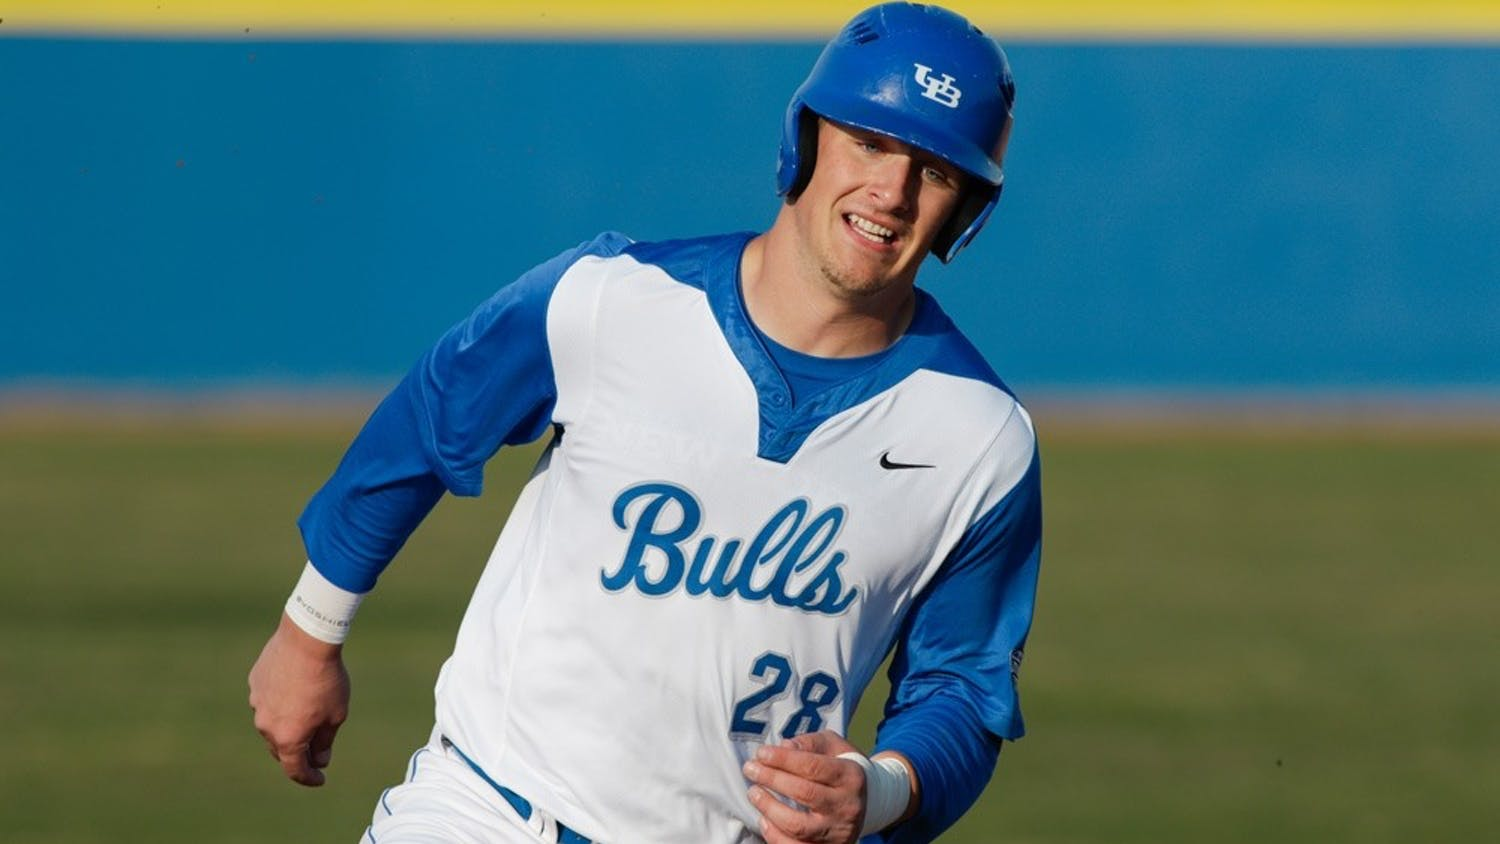 Junior outfielder Vinny Mallaro rounds the bases in a game last season. The Bulls are looking to have a successful Mid-American Conference run and return to the MAC Tournament.